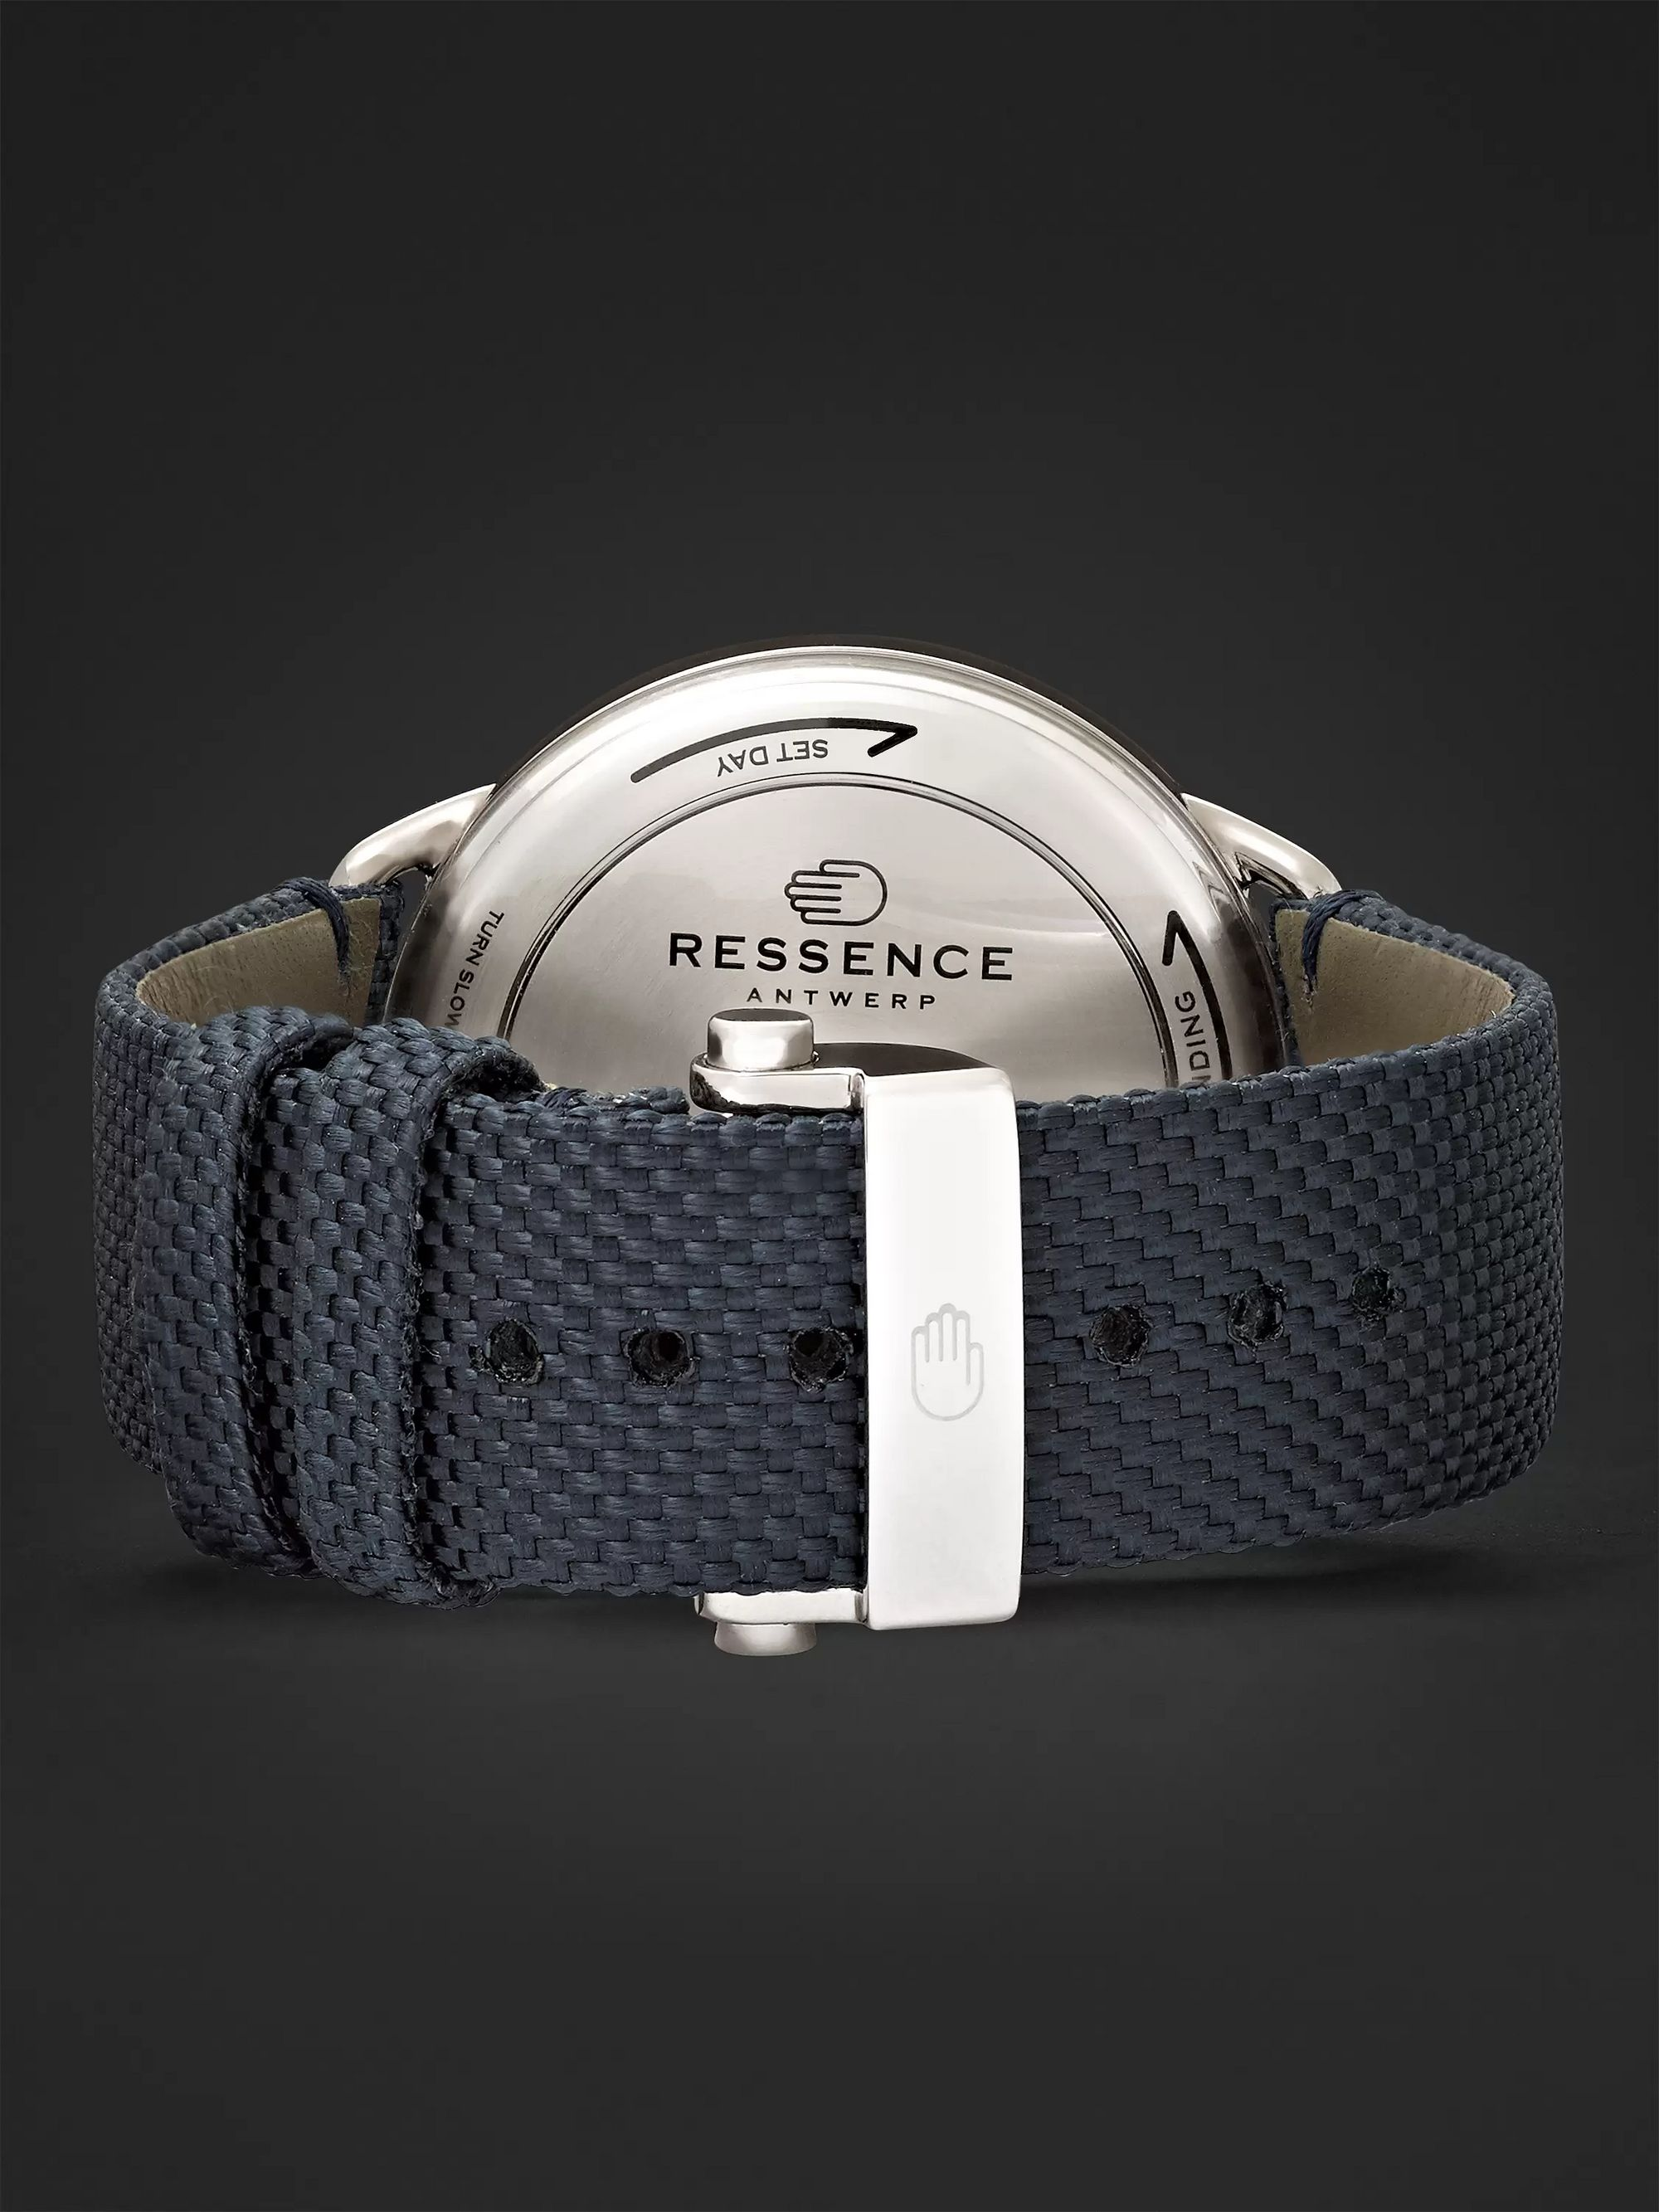 Ressence Type 1 Mechanical 42mm Titanium and Woven Watch, Ref. No. TYPE 1G